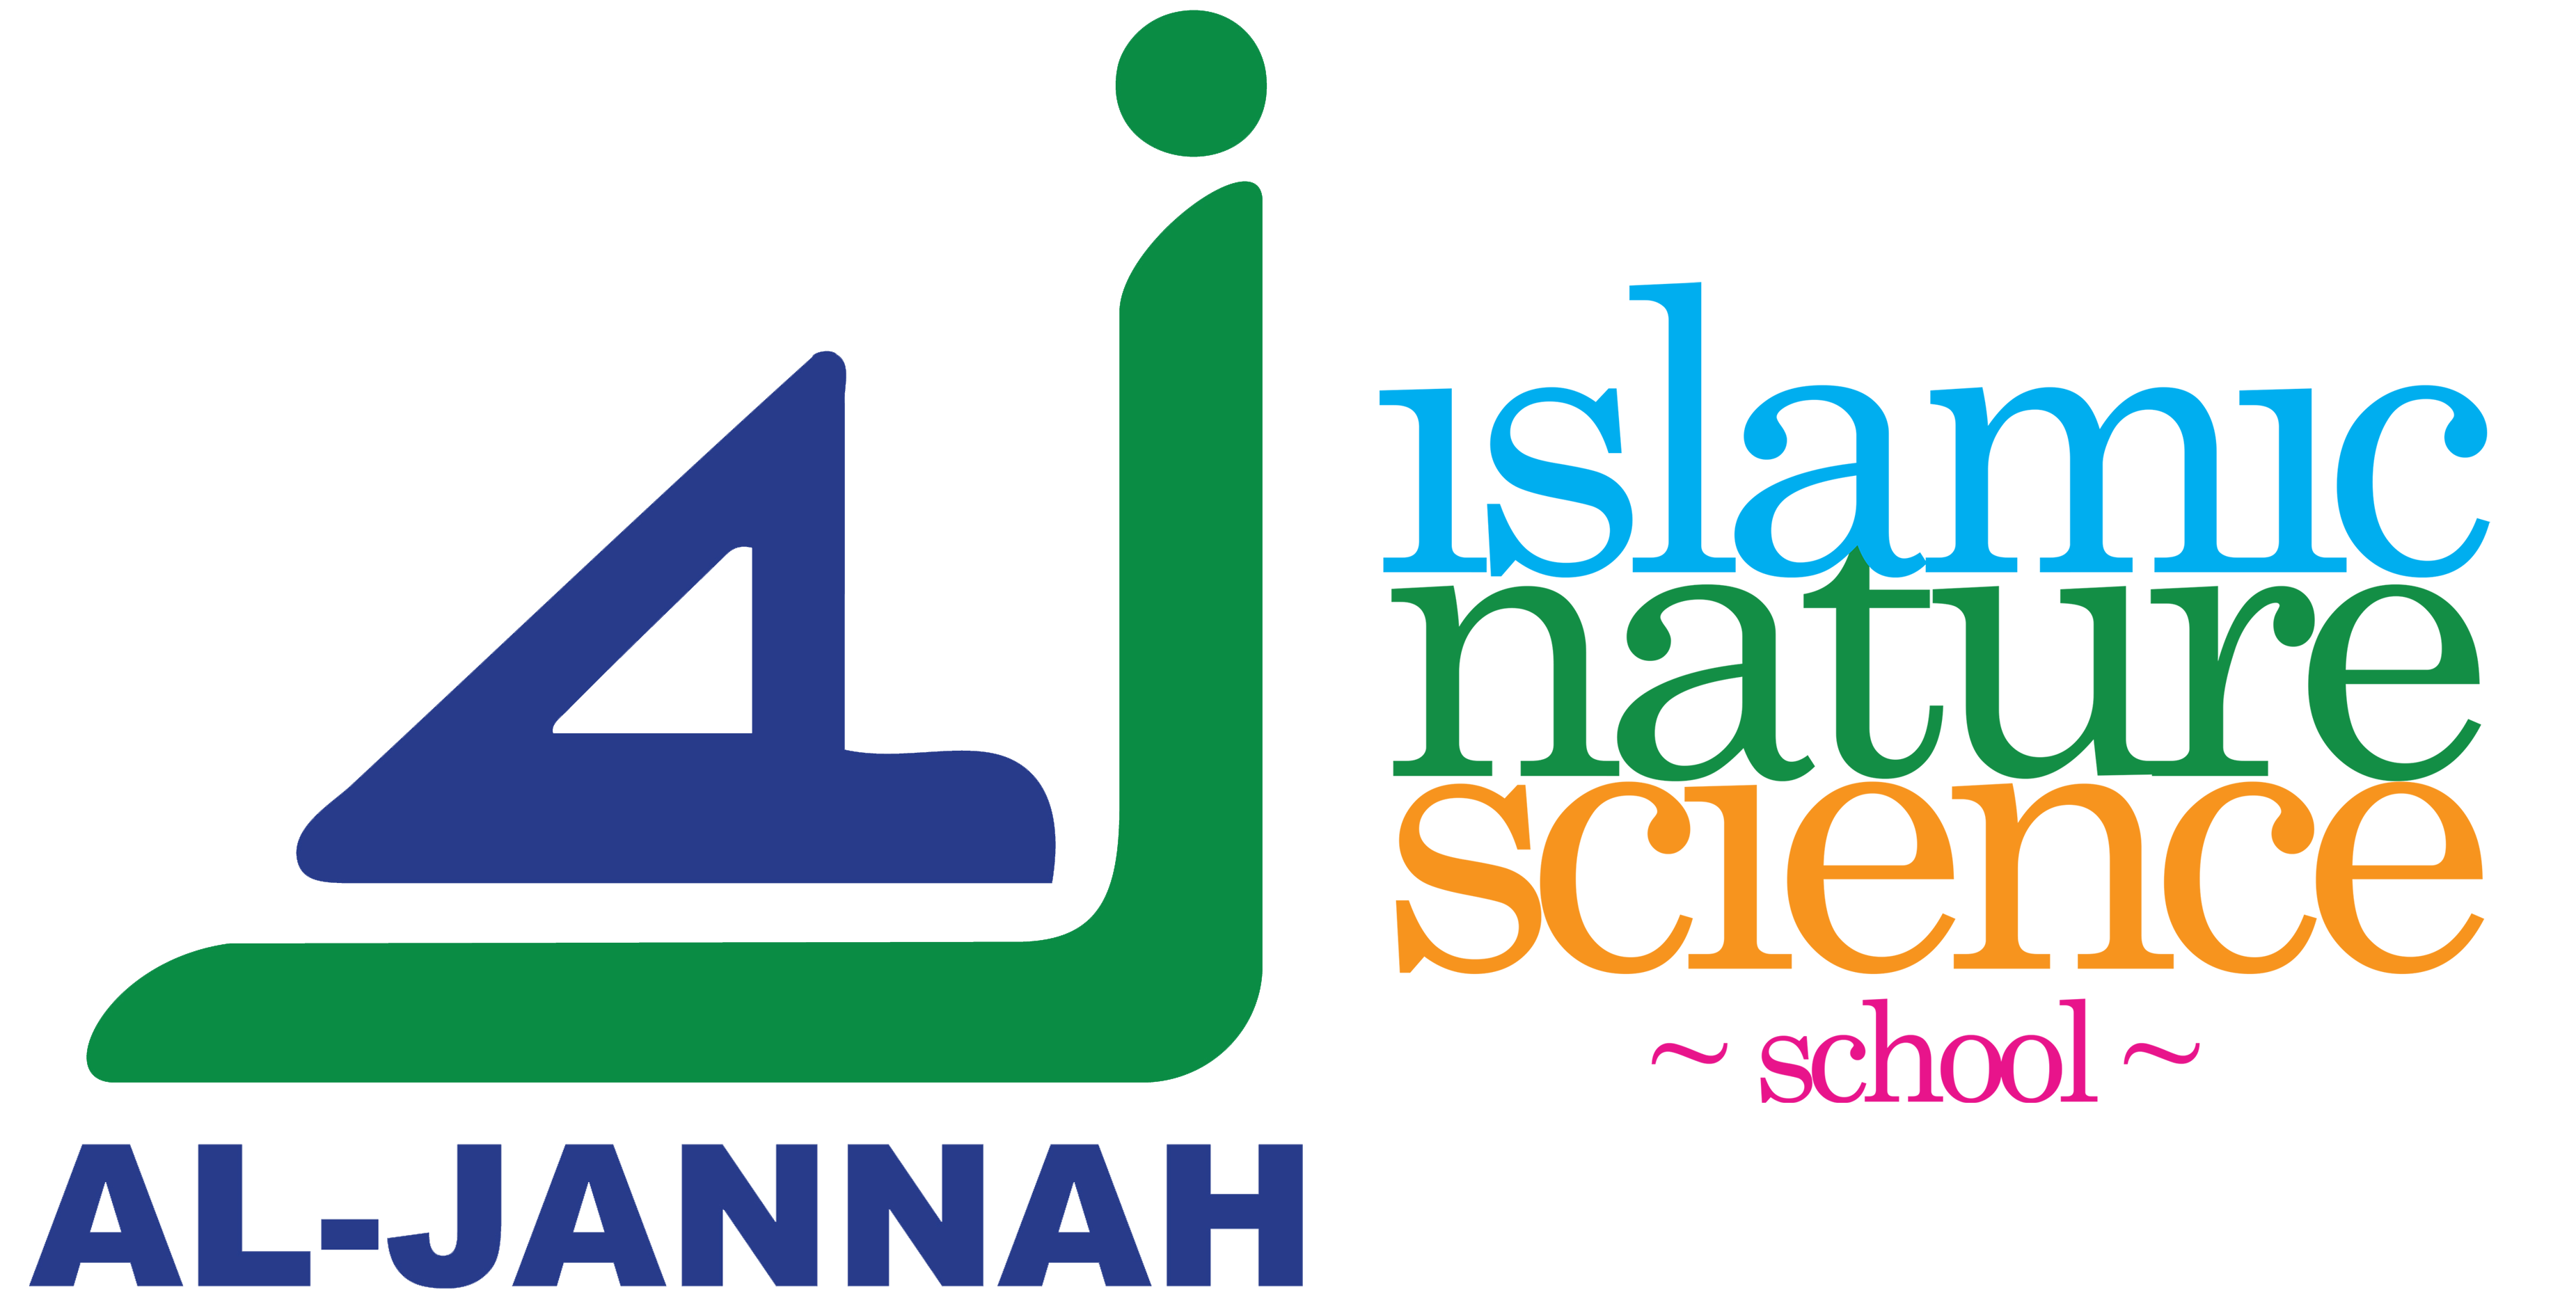 Sekolah Al-Jannah : Islamic, Nature & Science School